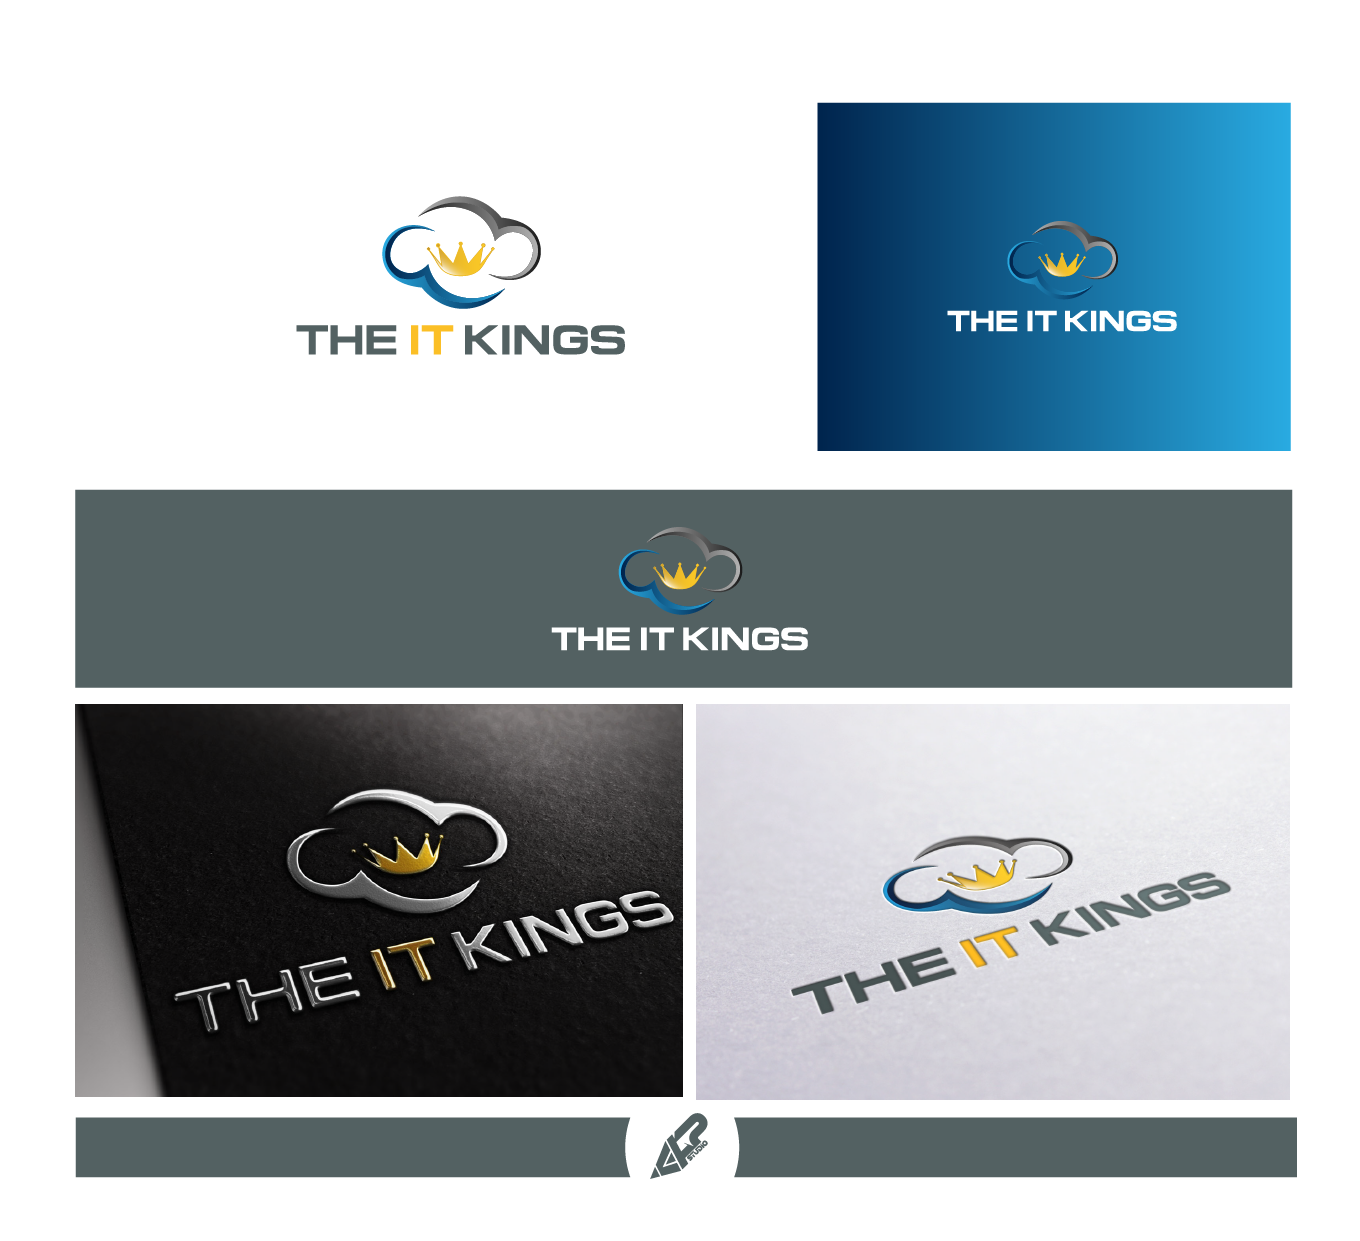 New logo wanted for The IT Kings